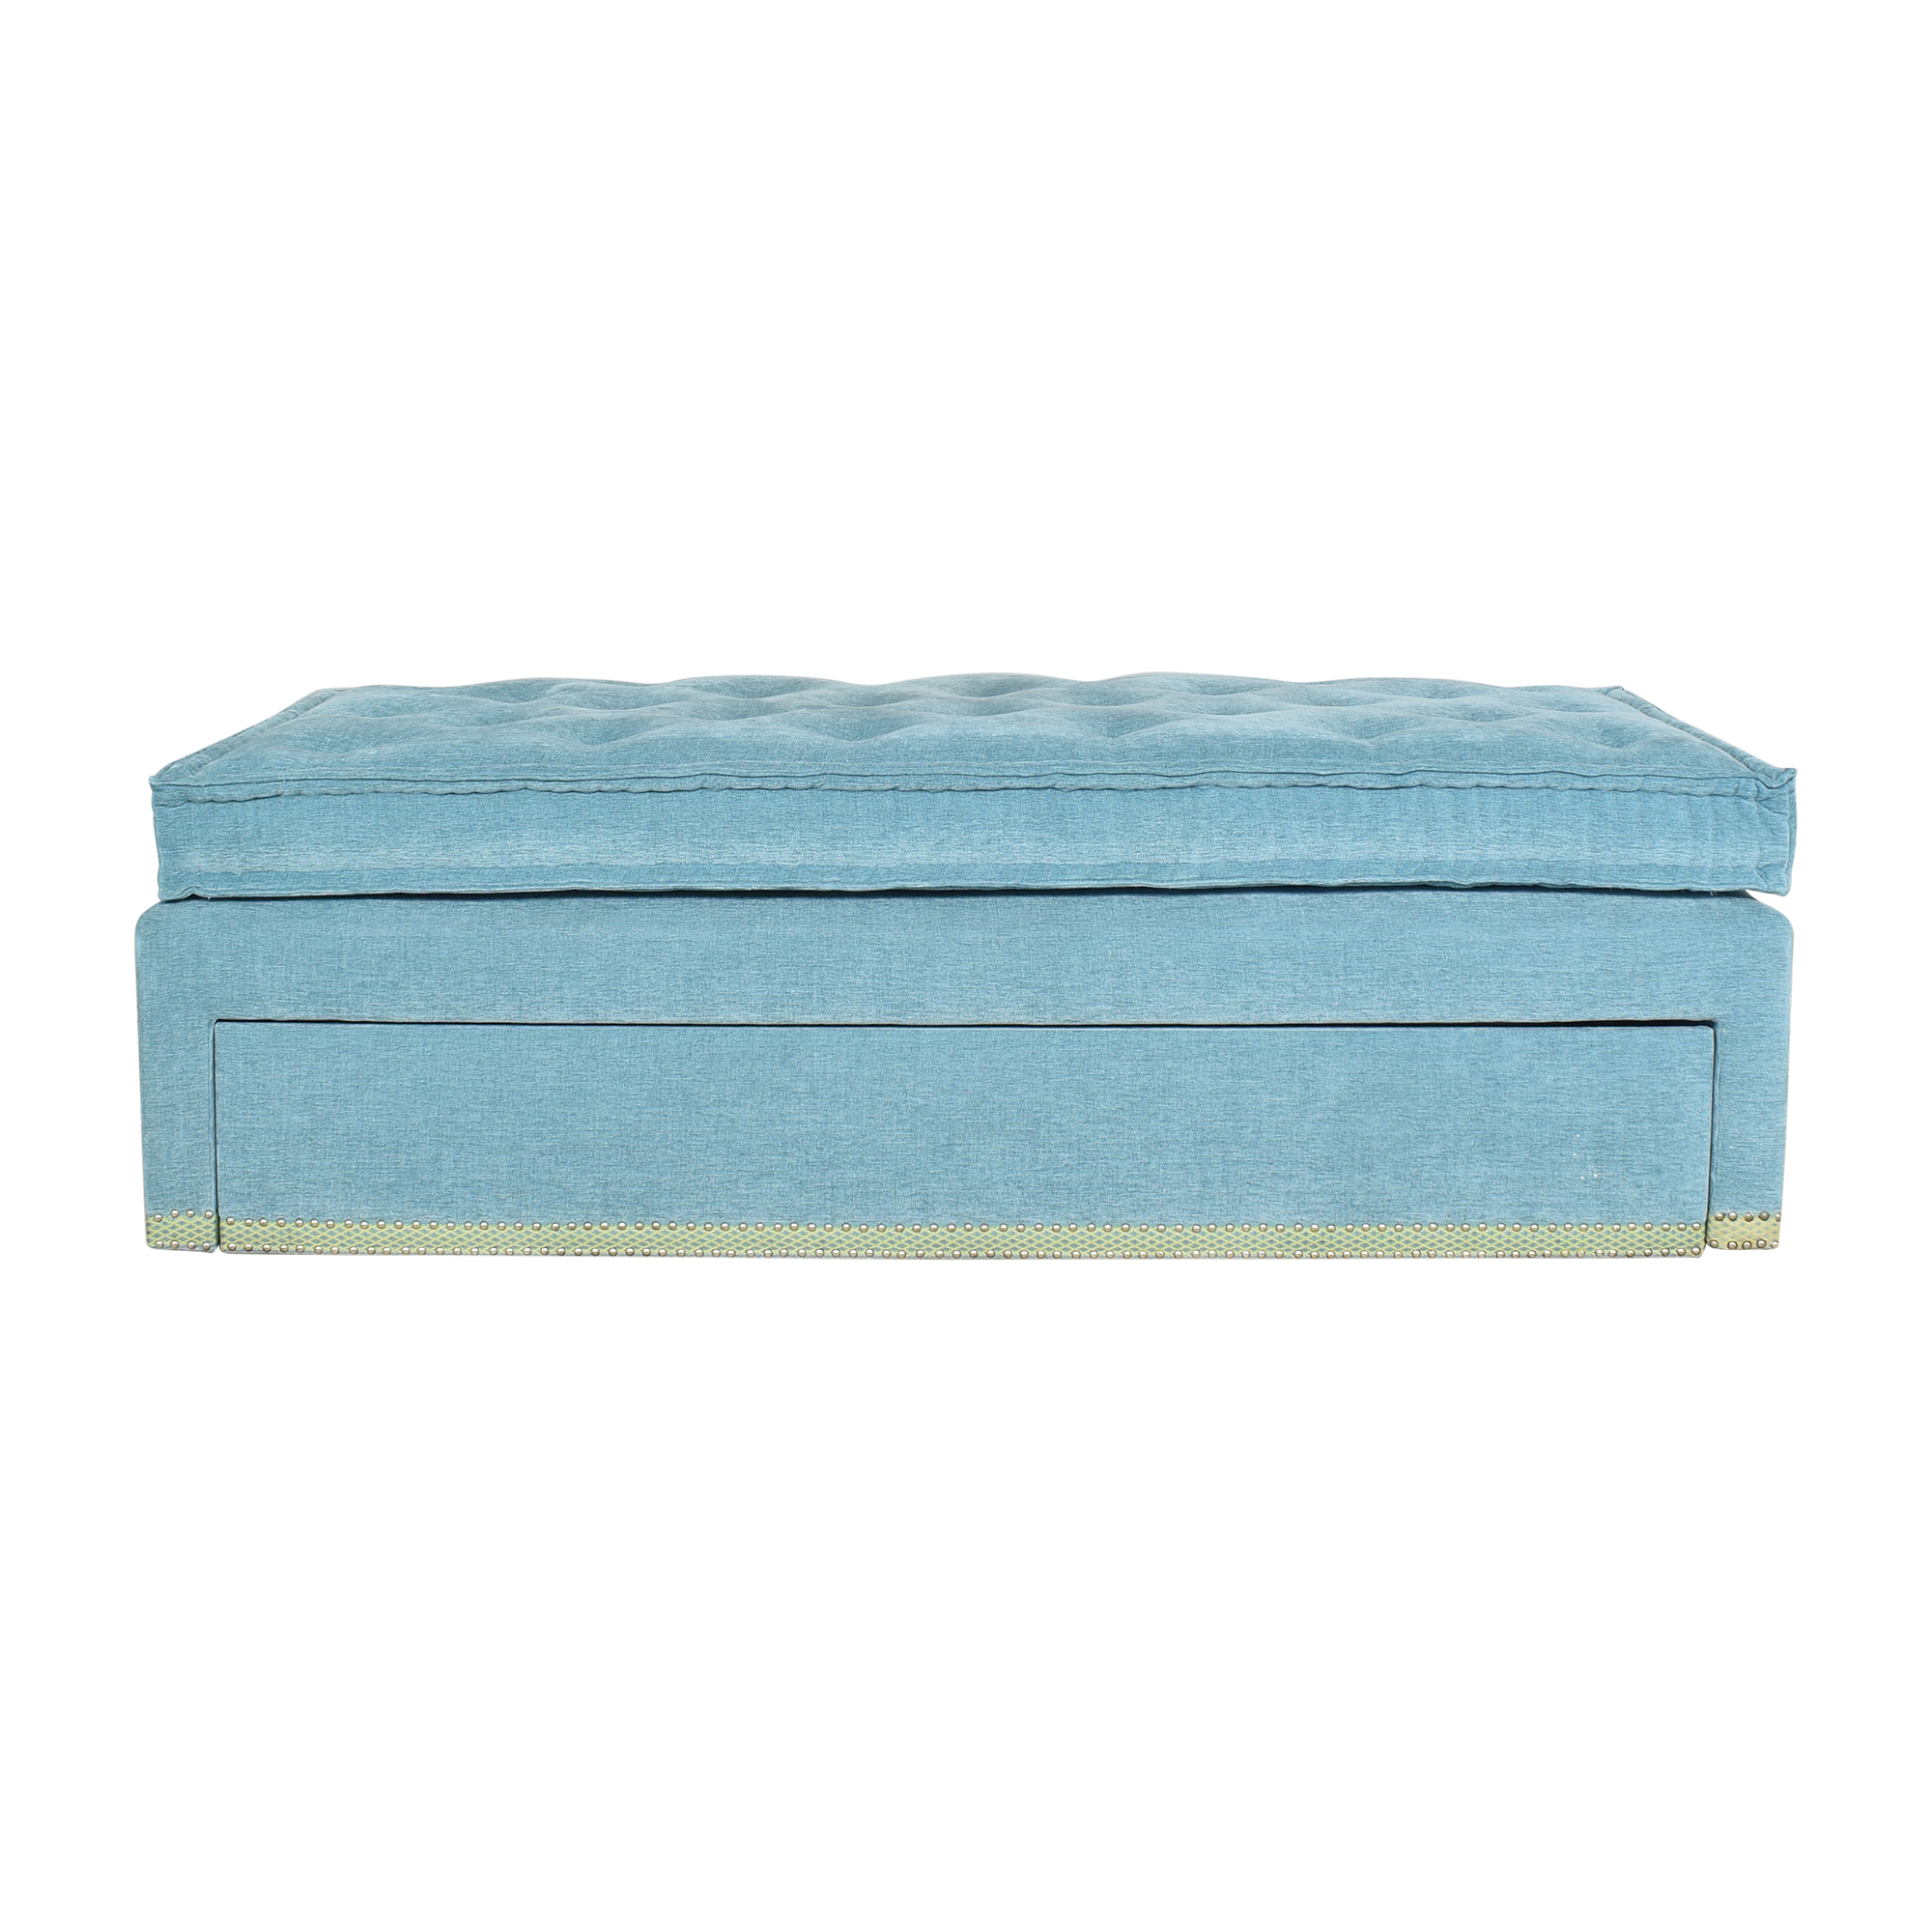 Charles H Beckley Charles H Beckley Daybed With Pop-Up Trundle coupon